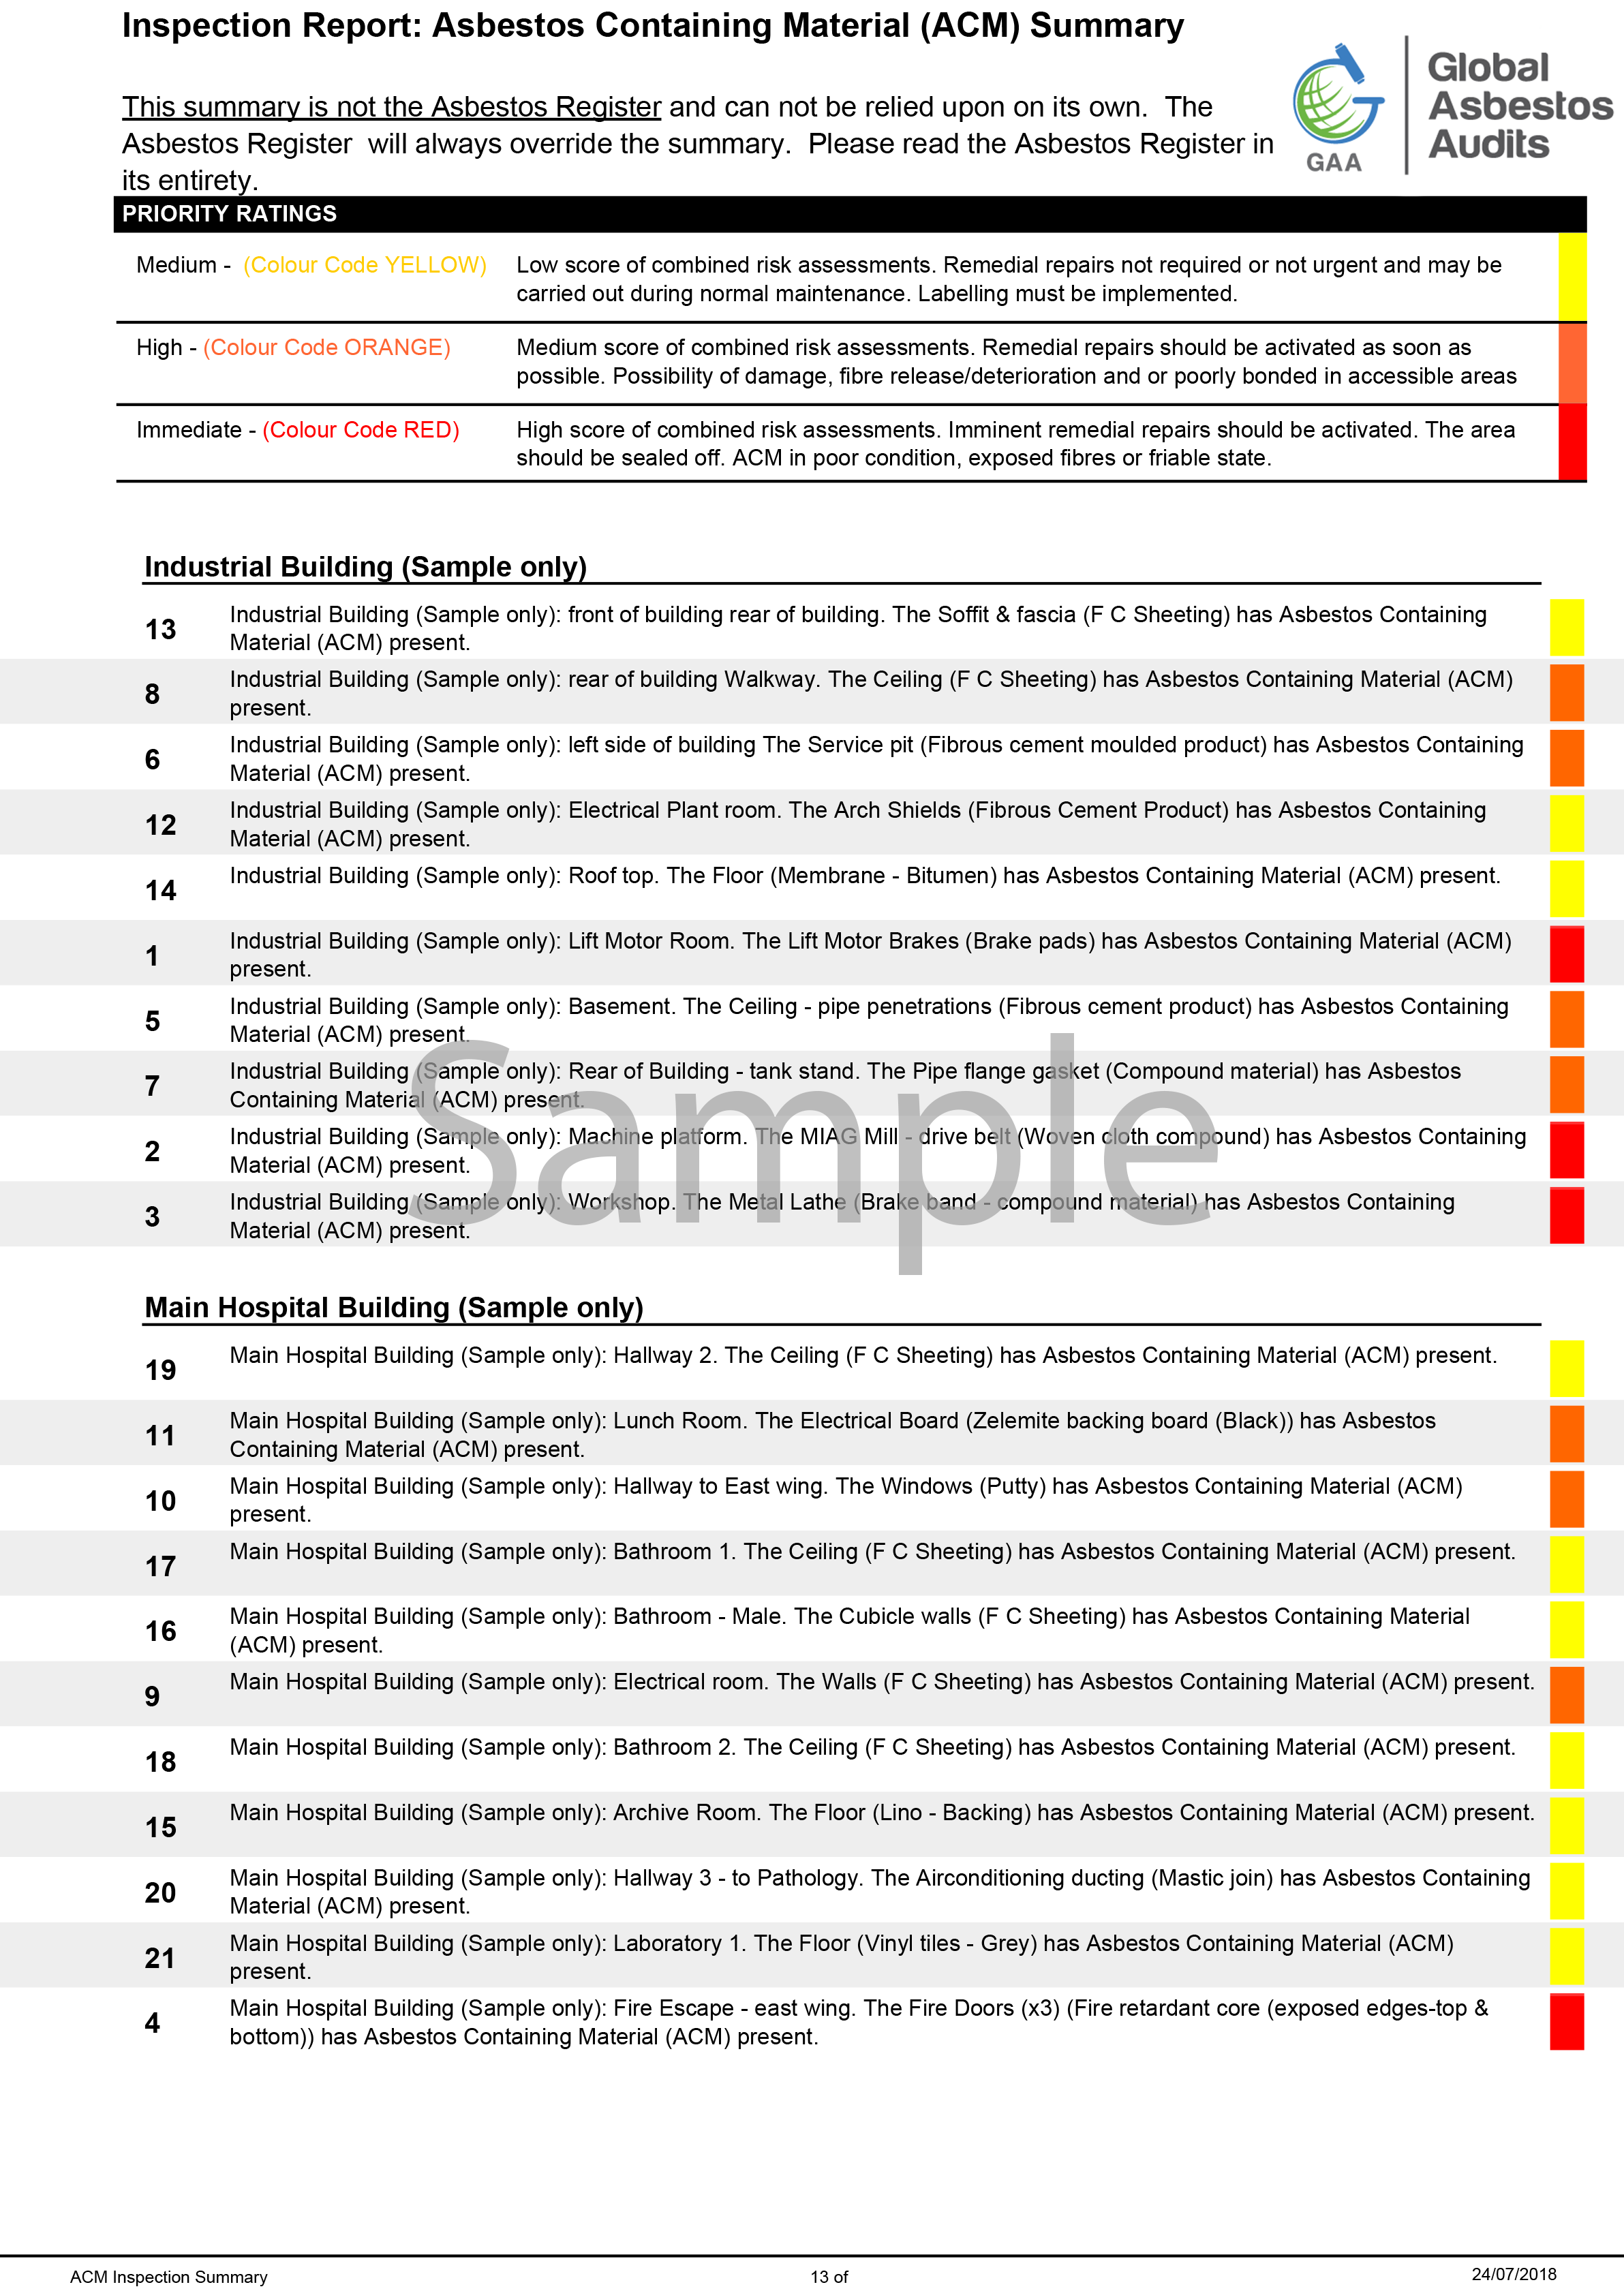 Appendix 5 ACM Colour Coded Summary.png